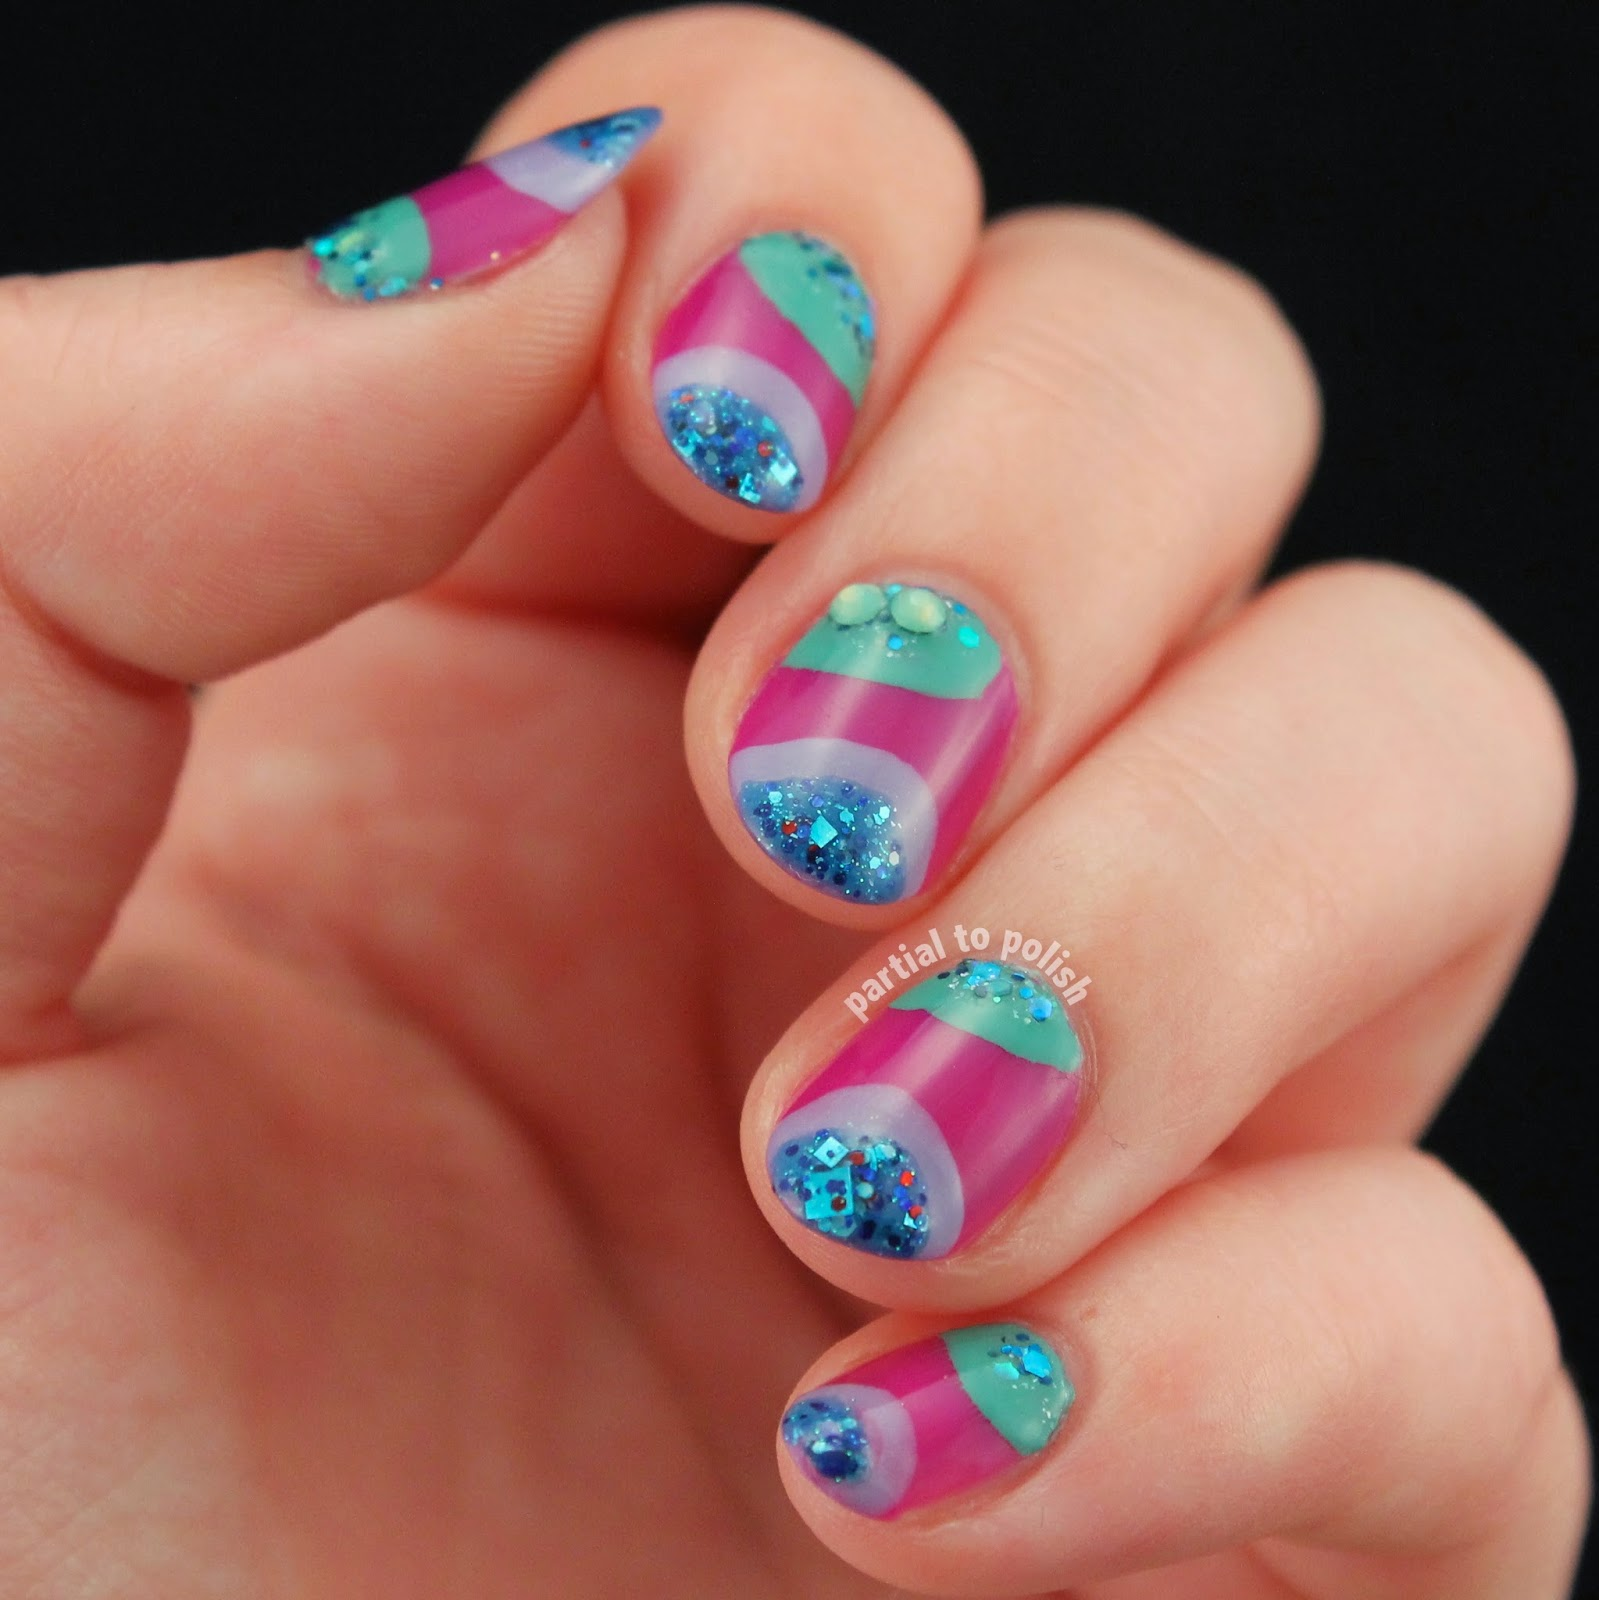 Groovy Purple & Green Nail Art Featuring a Born Pretty Store Iridescent Rhinestone Review!